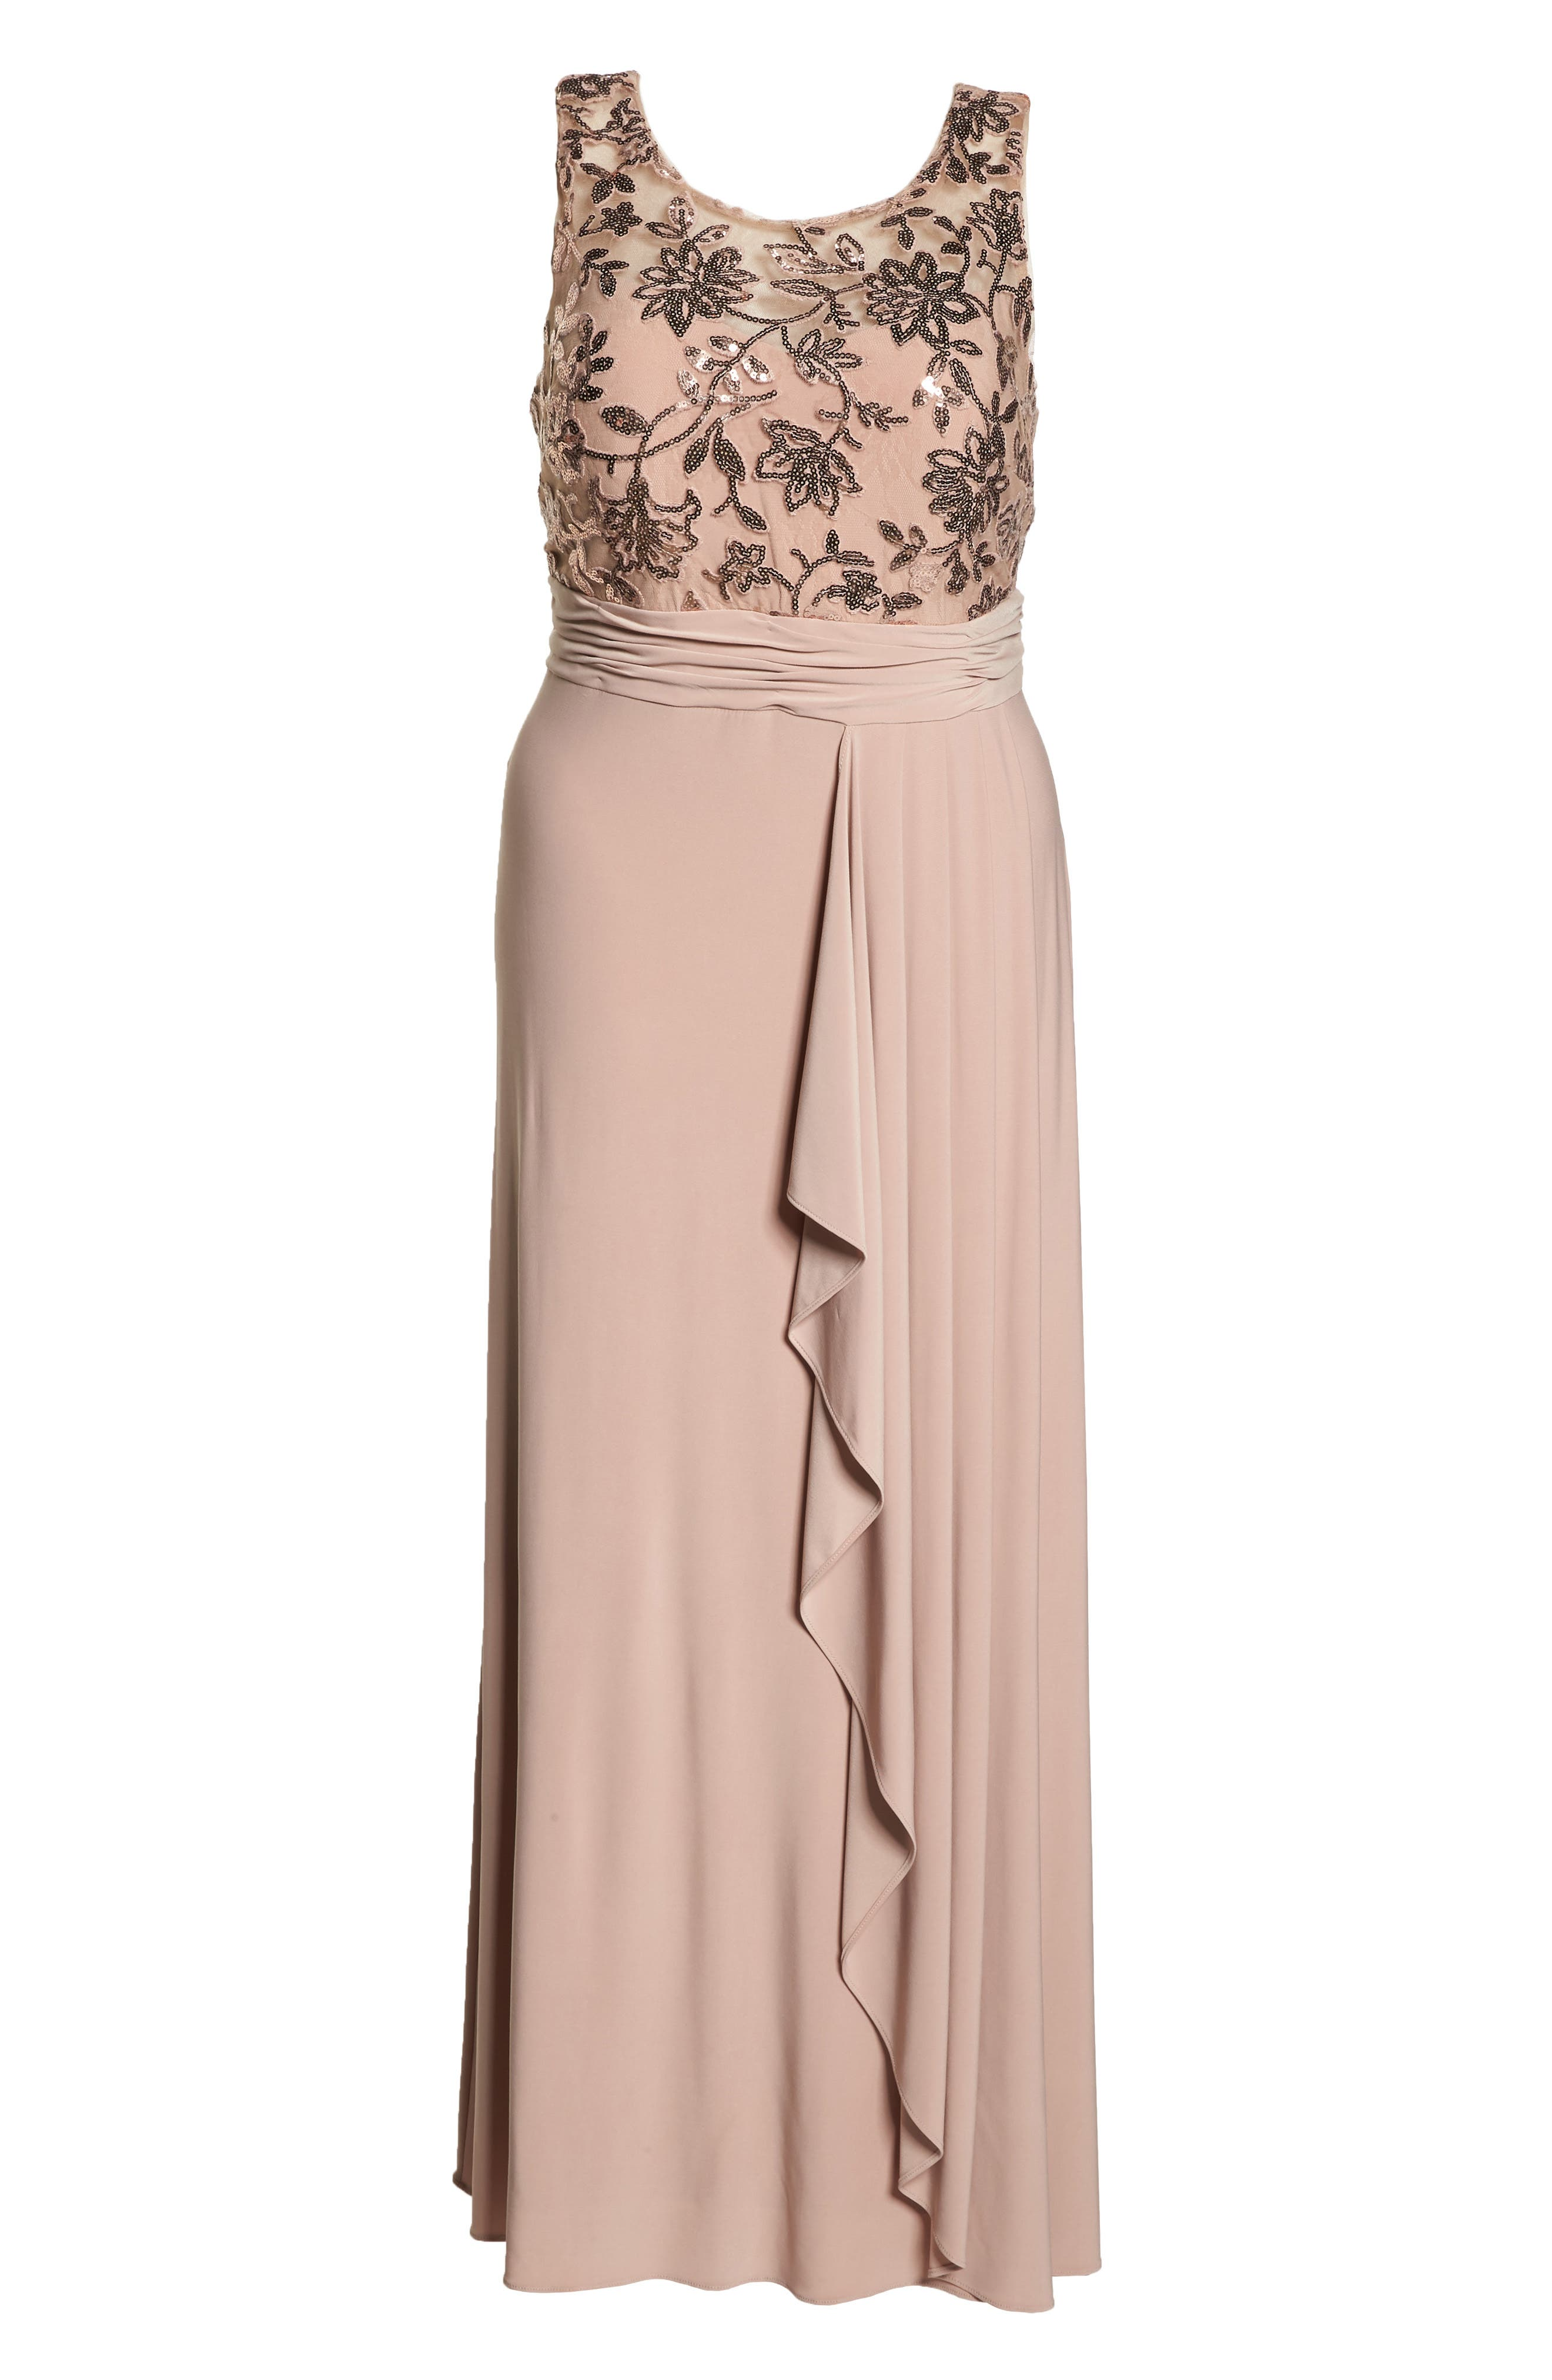 Sequin Lace Bodice Ruffle Skirt Knit Gown,                             Alternate thumbnail 7, color,                             ROSE GOLD